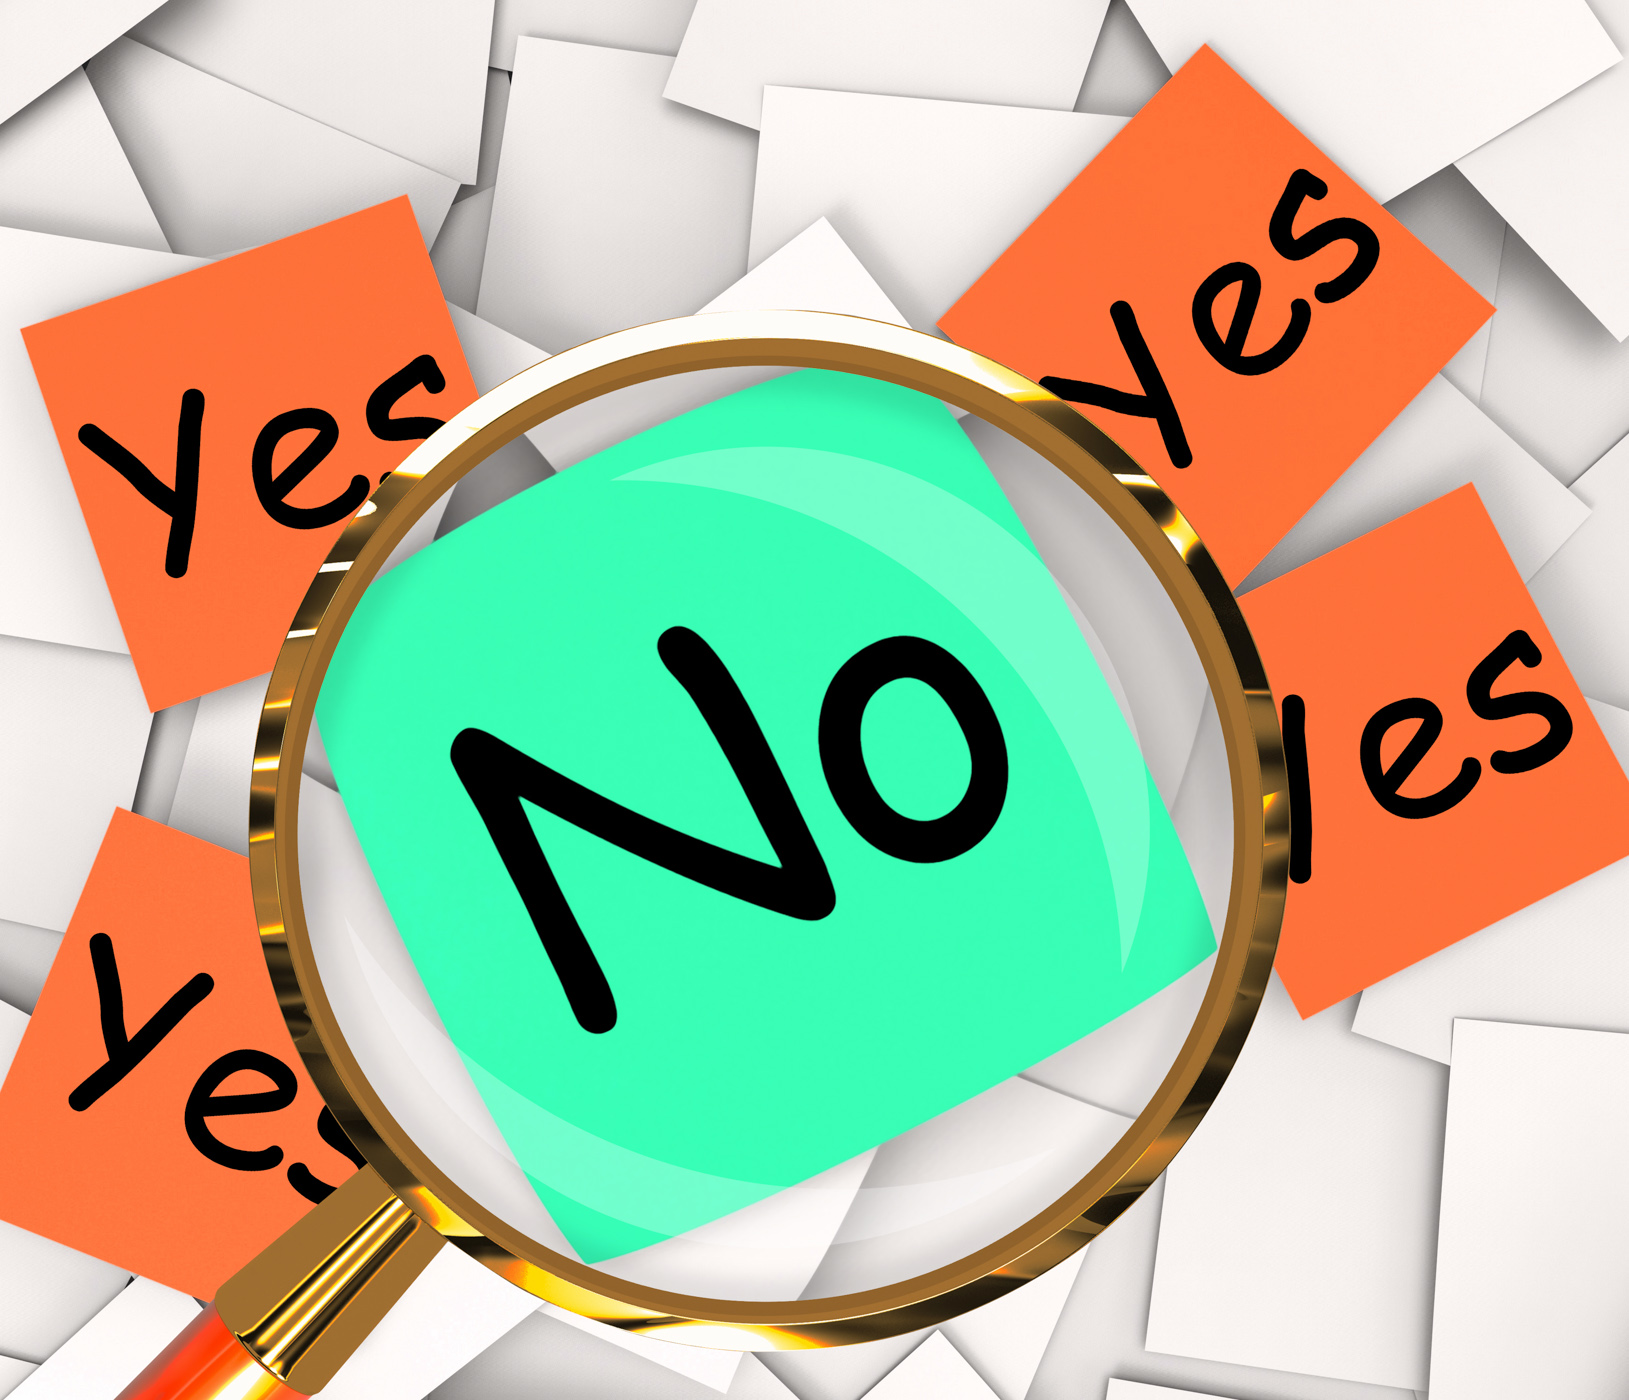 Yes No Post-It Papers Show Affirmative Or Negative, Accept, Fine, Post-itnotes, Positive, HQ Photo